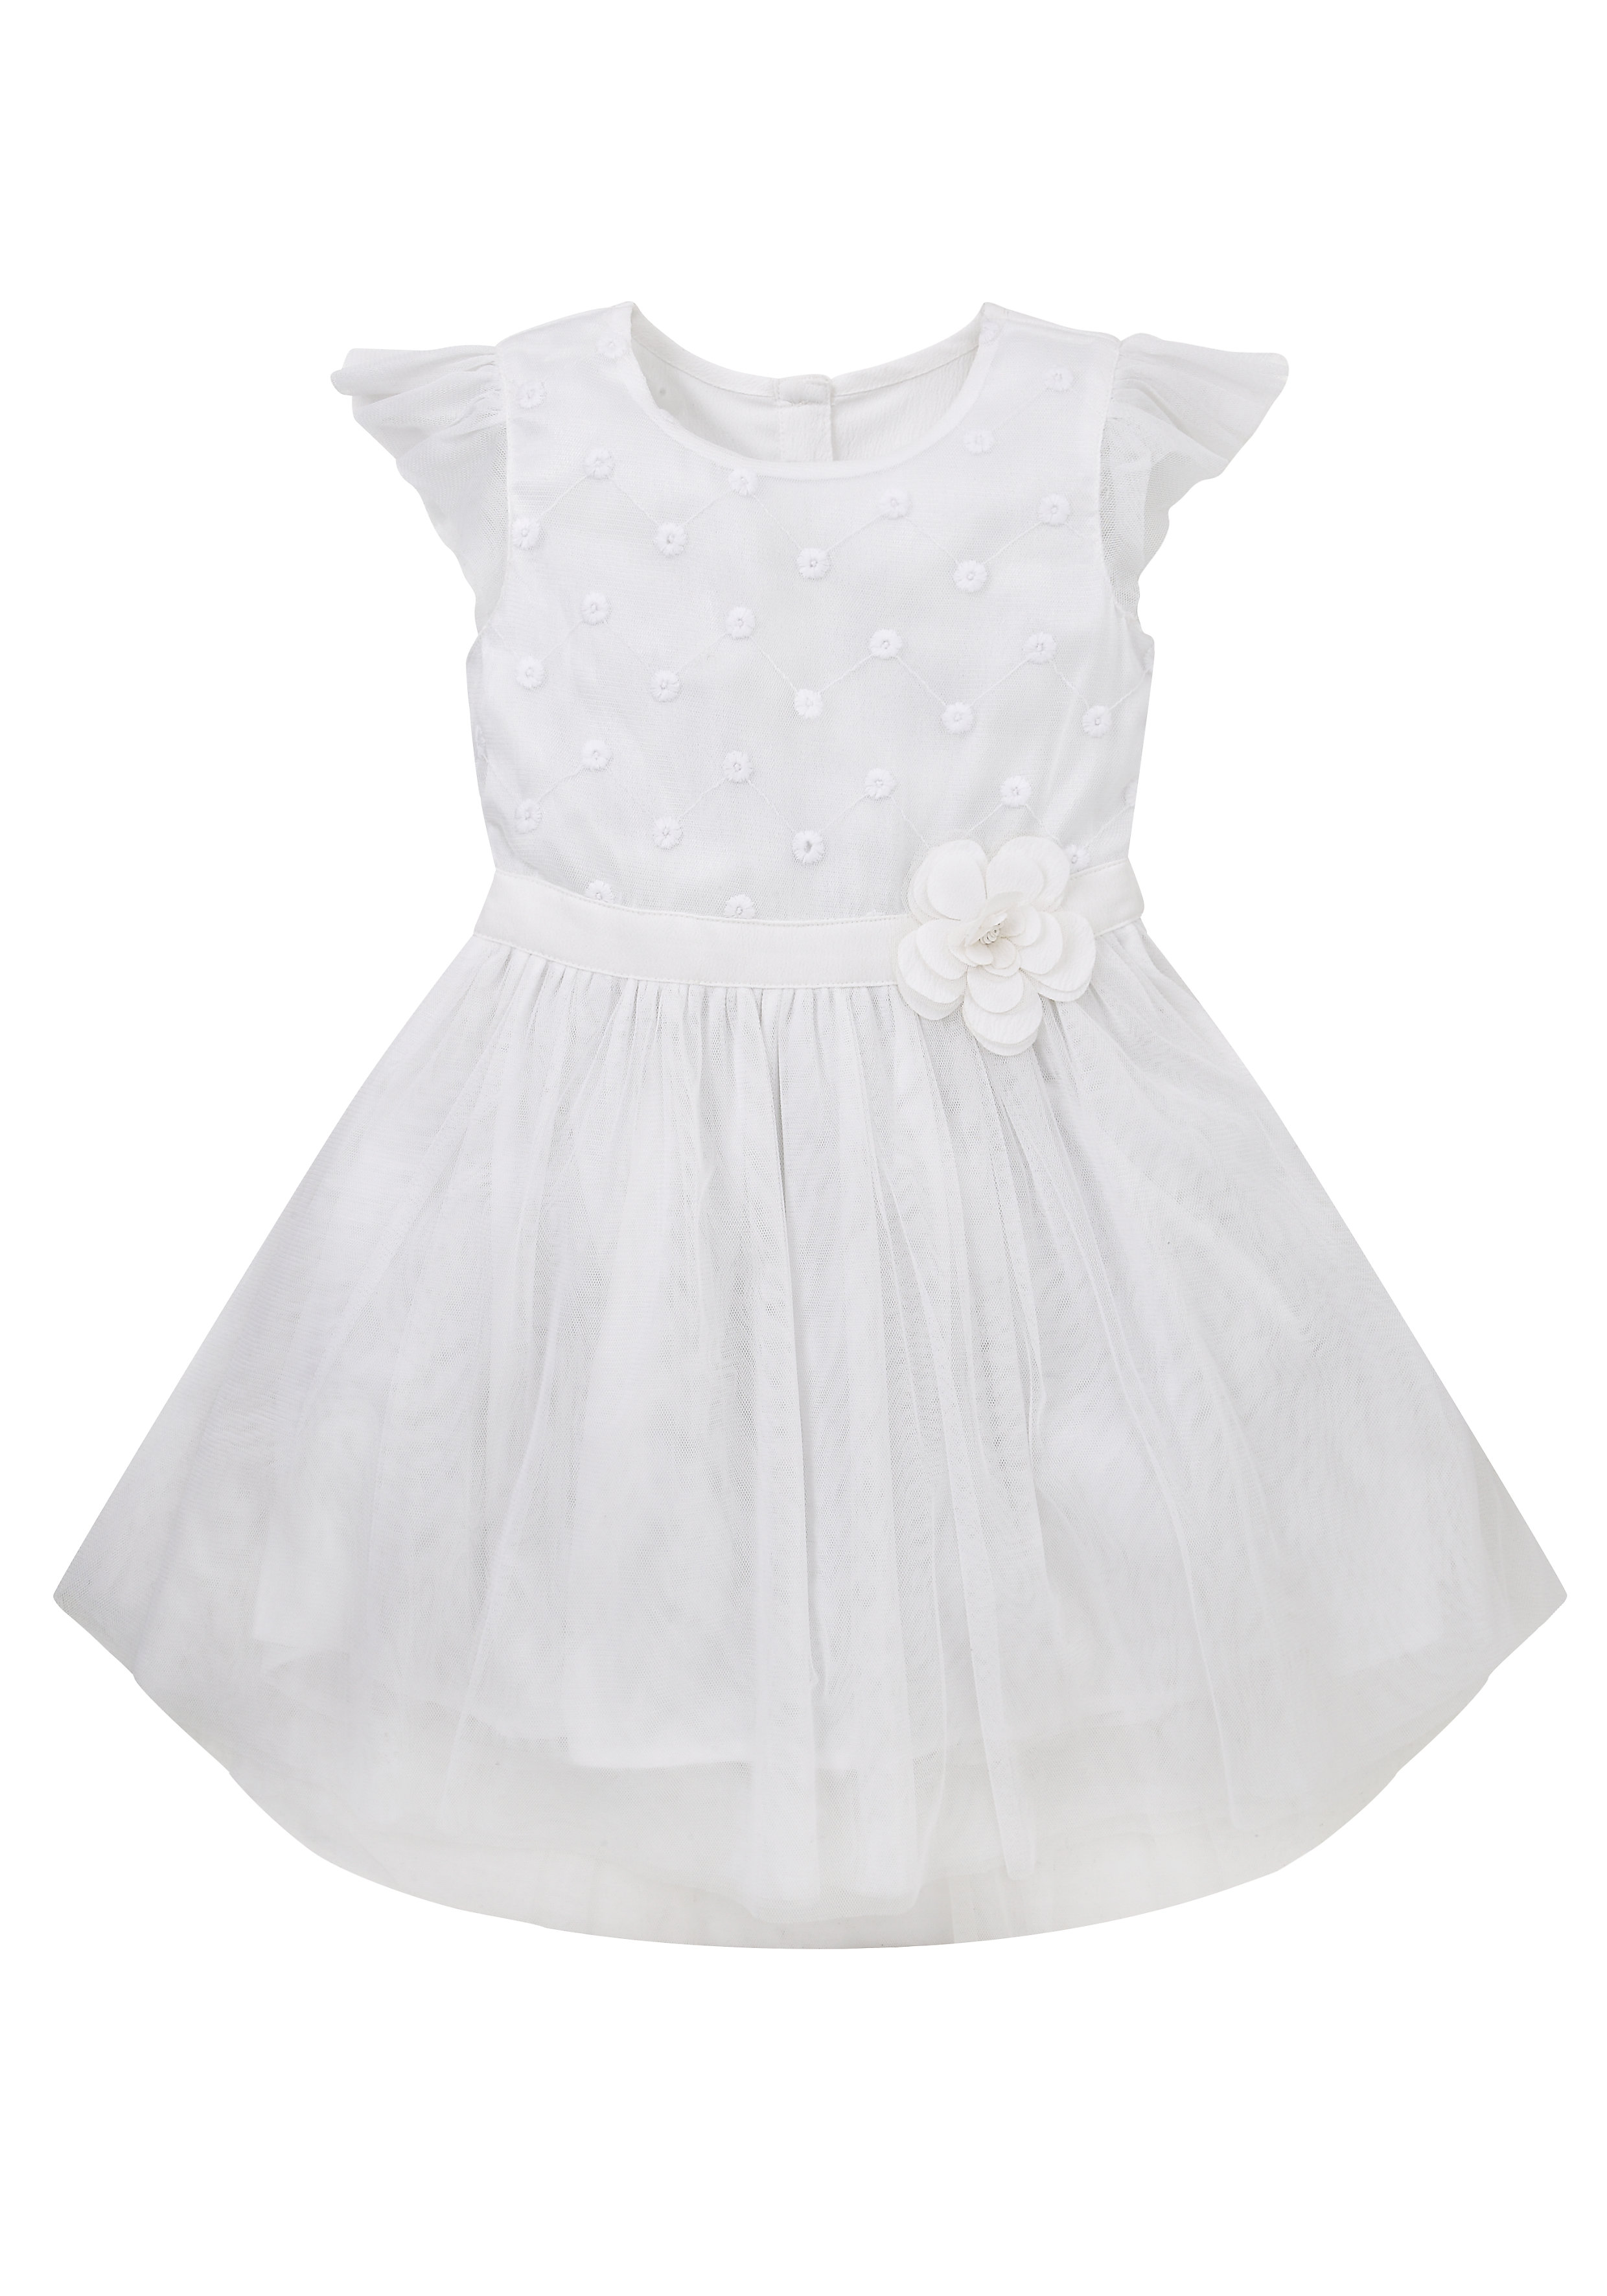 Mothercare | Girls Corsage Dress With Train - White